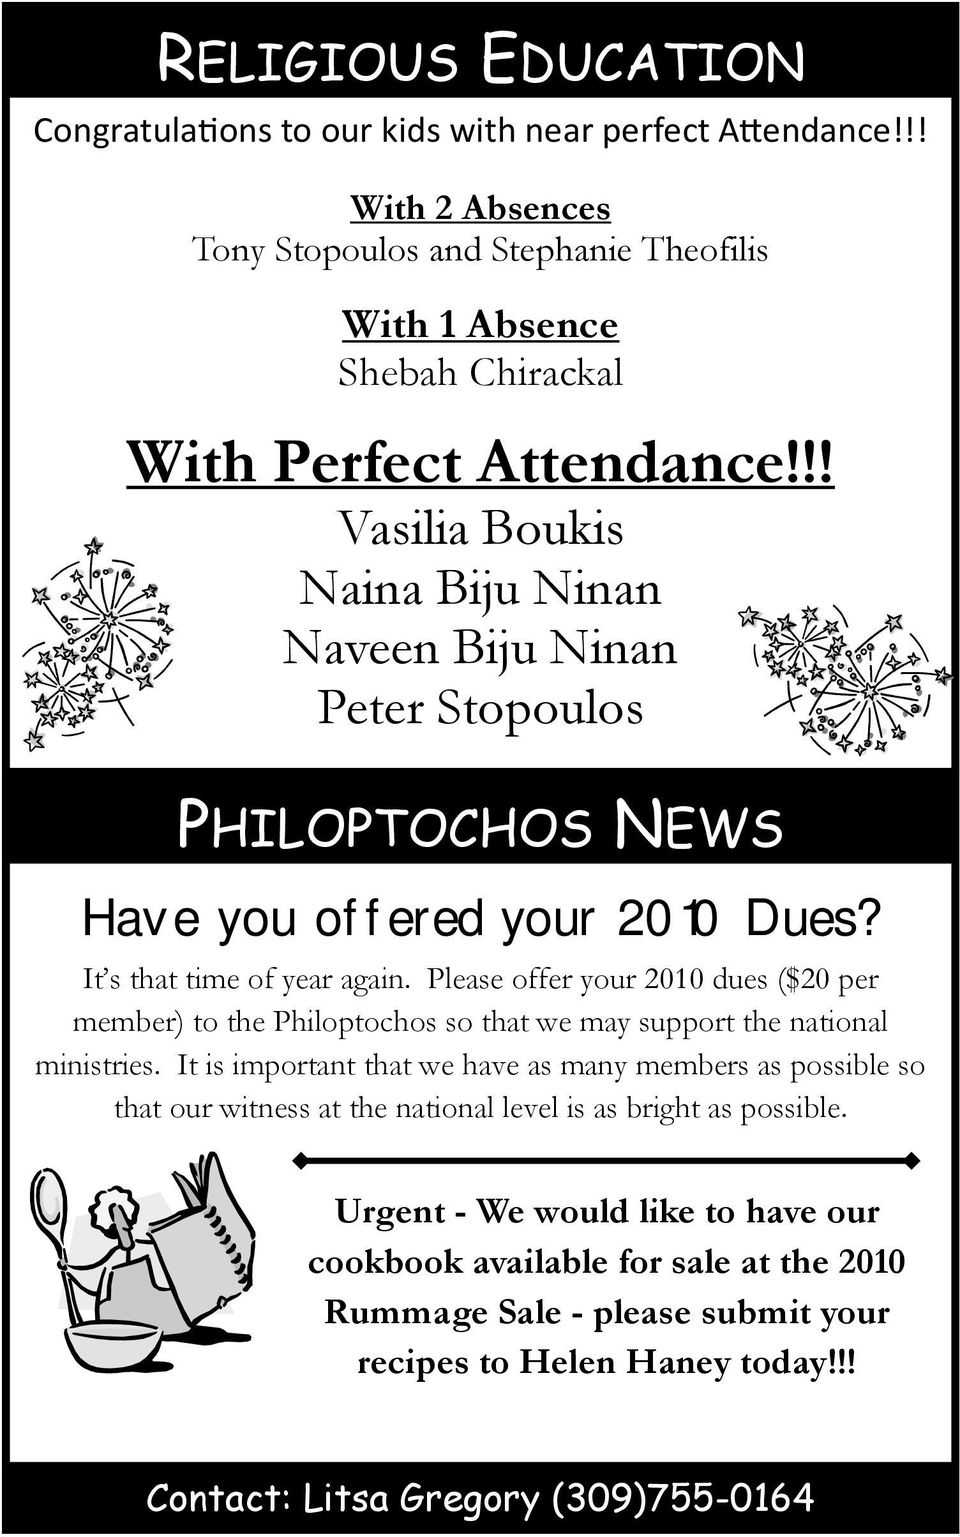 Please offer your 2010 dues ($20 per member) to the Philoptochos so that we may support the national ministries.